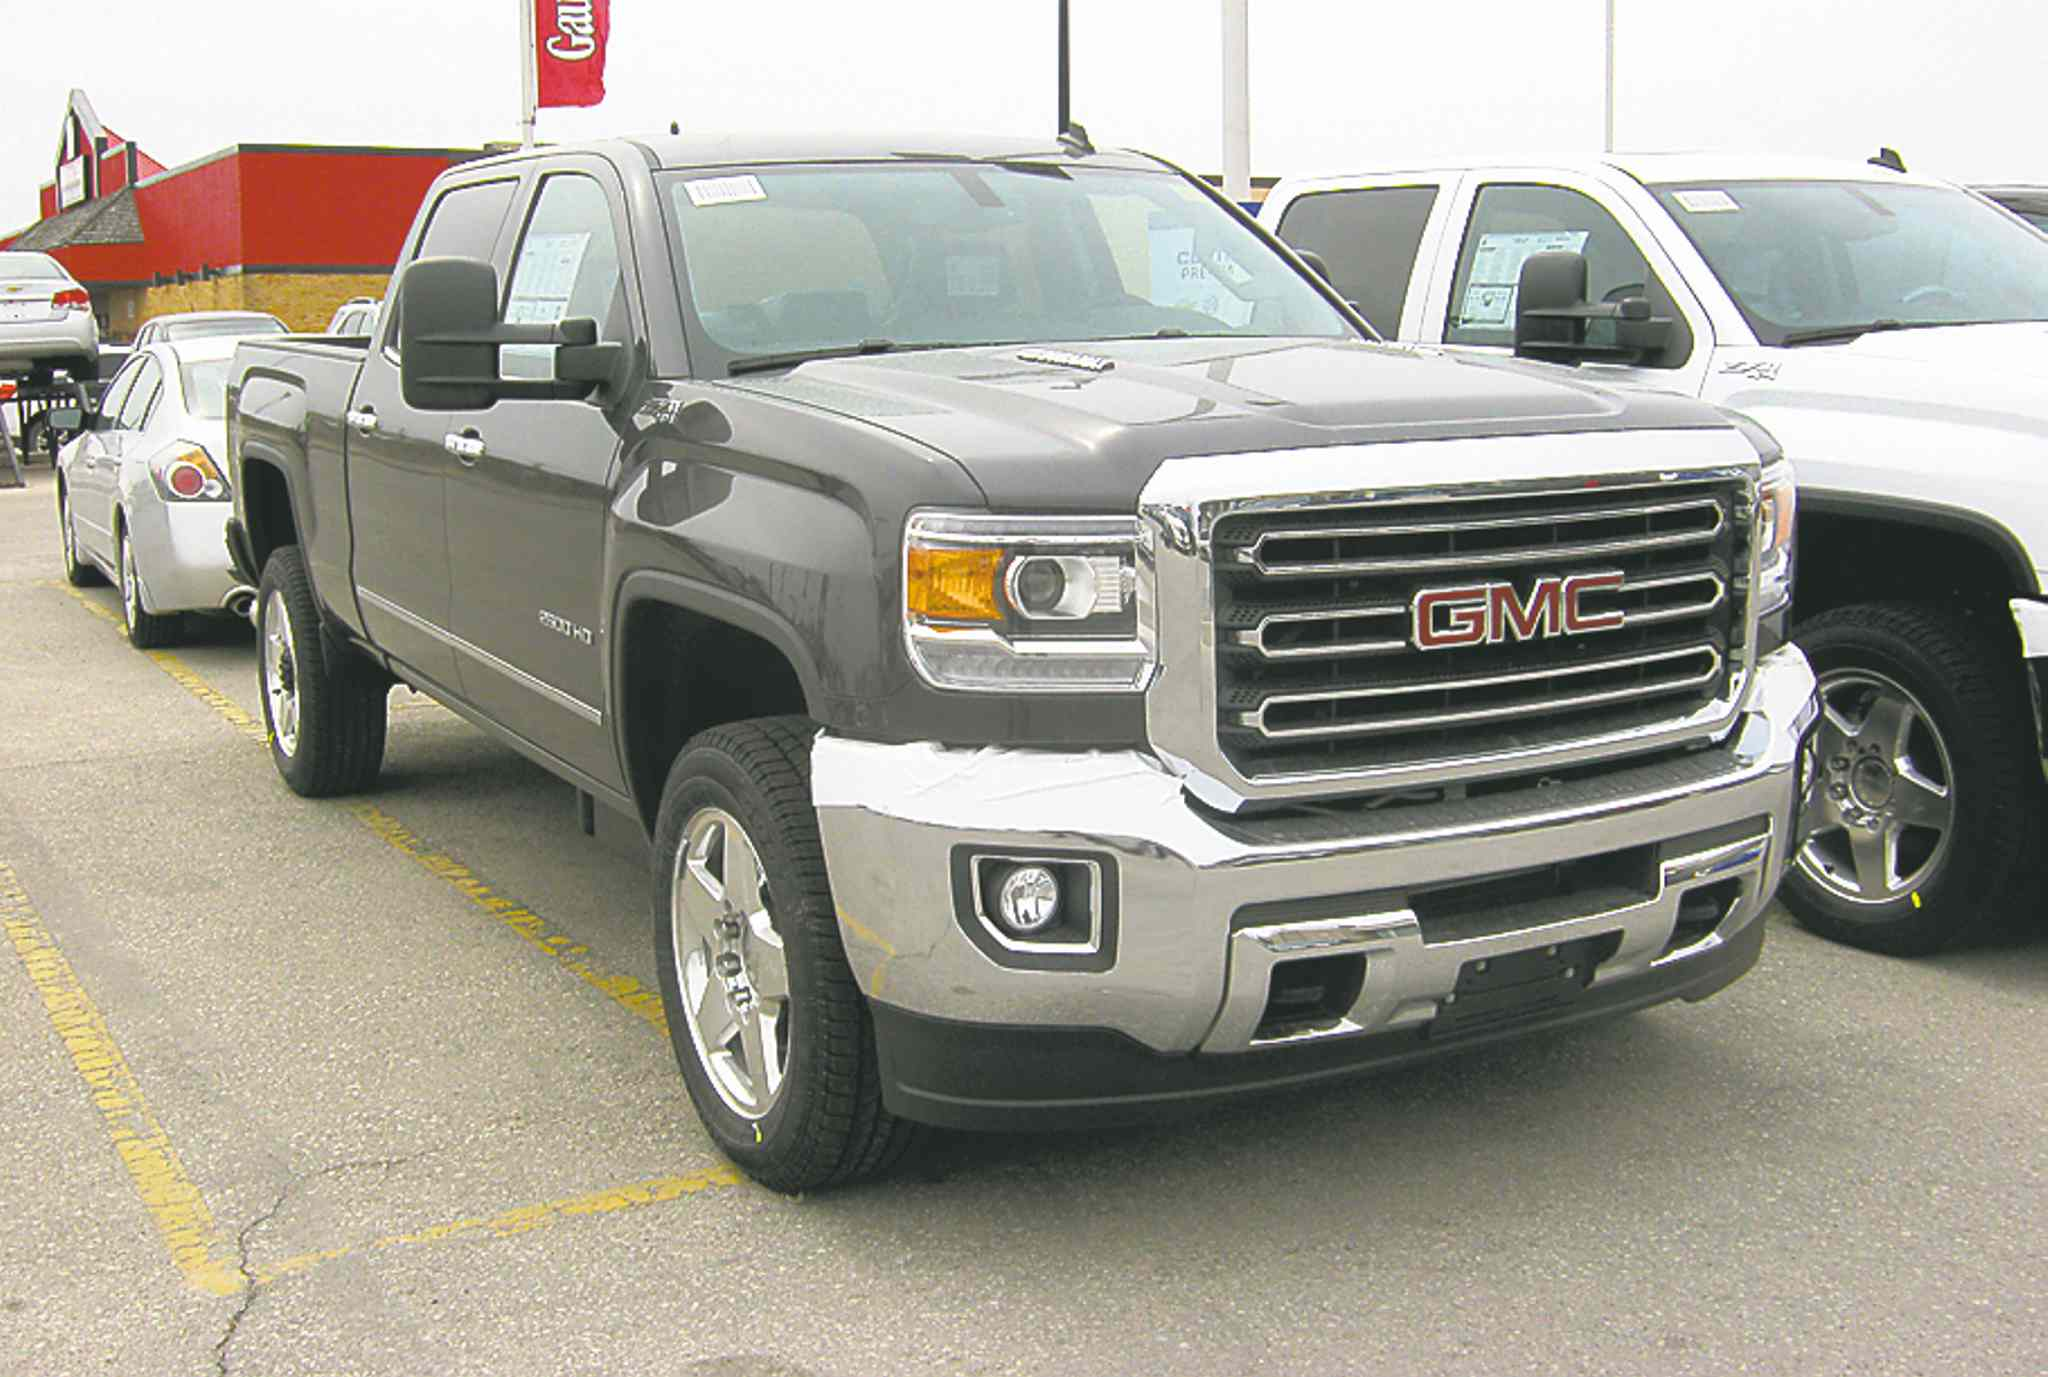 GMC's long-awaited redesigned 2015 Sierra pickups are in showrooms now.